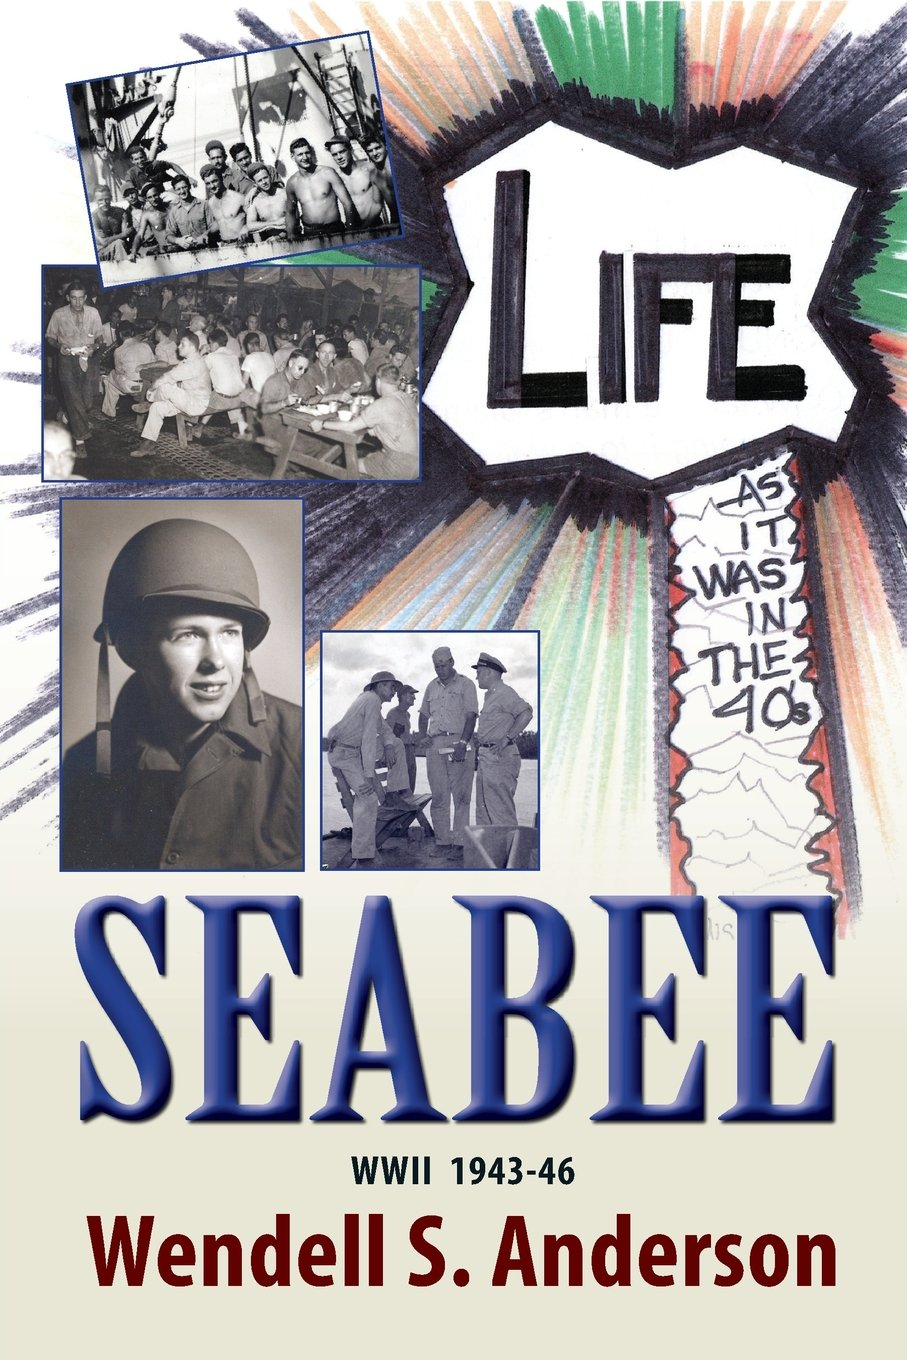 Read Online Seabee, Life as It Was in the 40's WWII 1943 -46 ebook